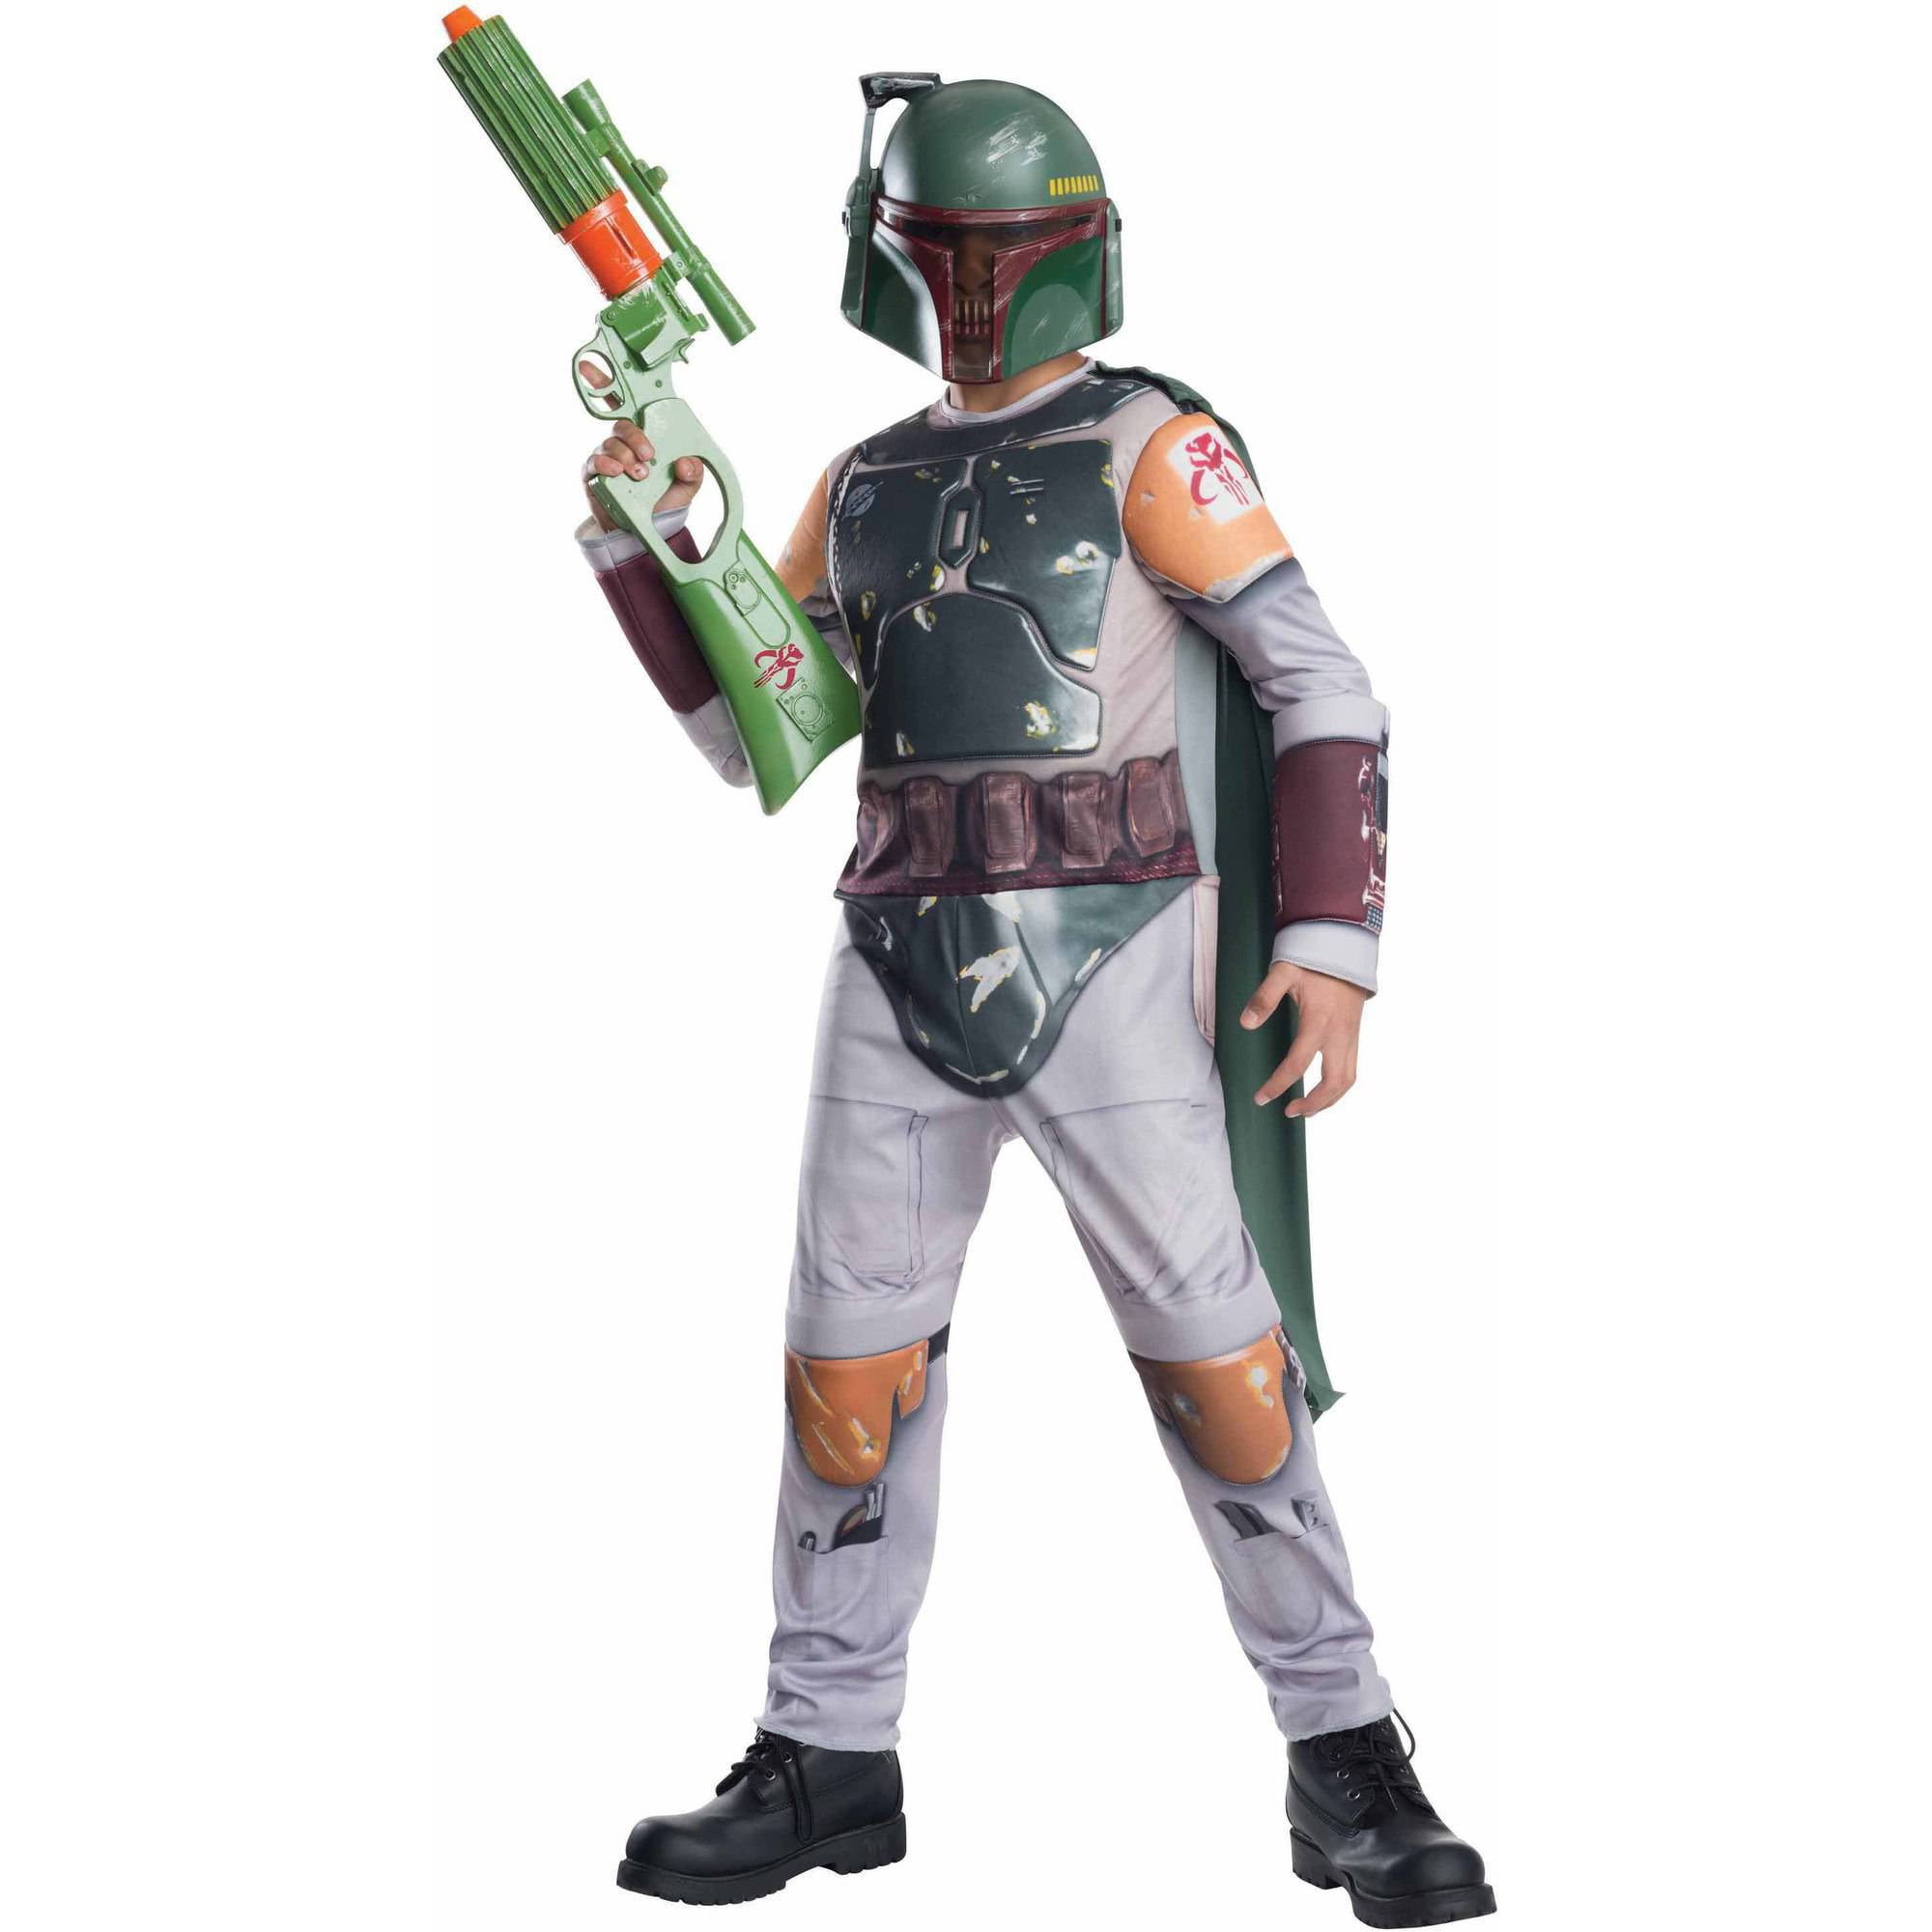 sc 1 st  Walmart & Star Wars Boba Fett Child Dress Up / Role Play Costume - Walmart.com